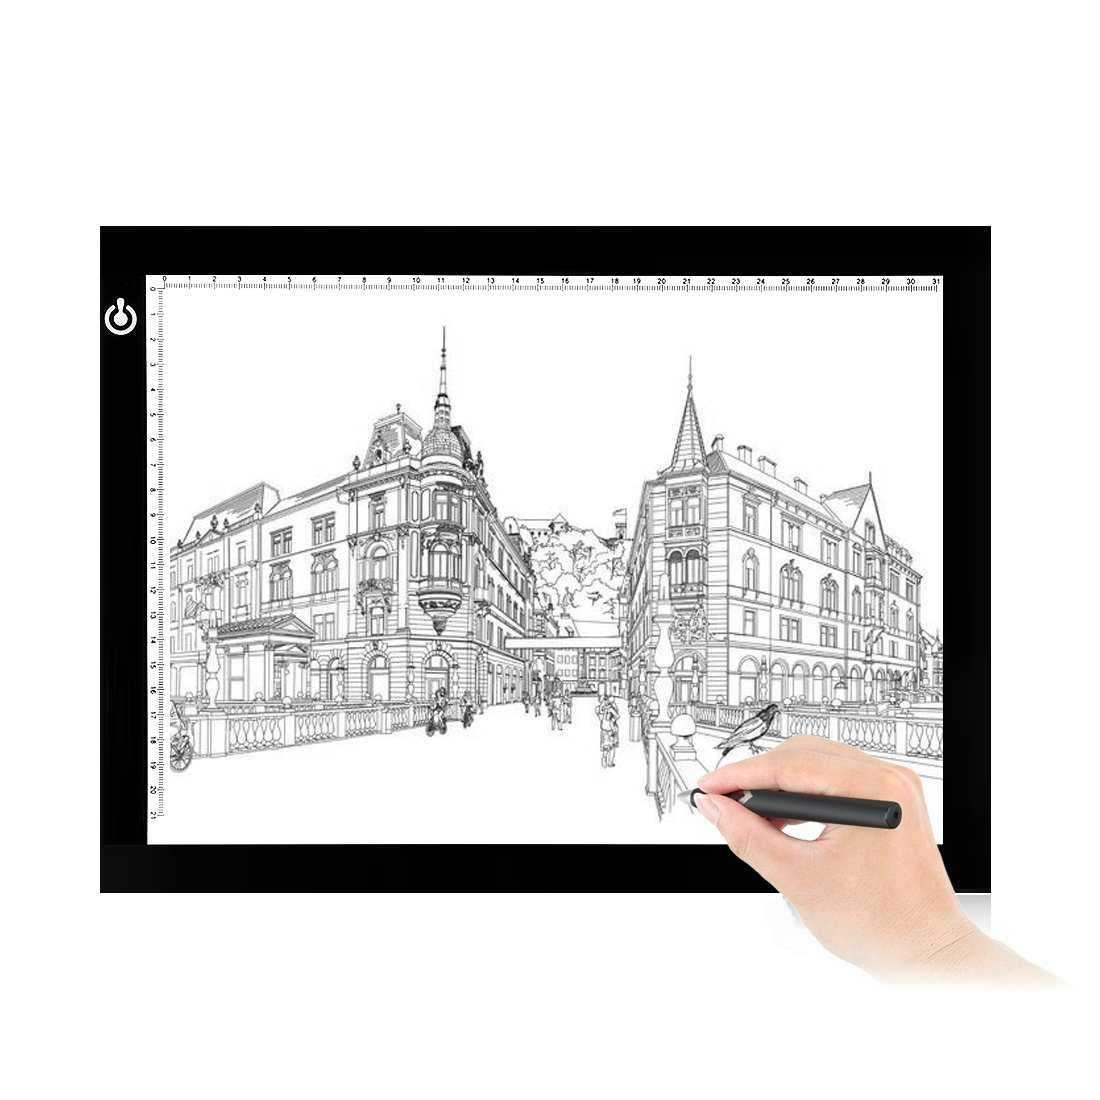 NXENTC A4 Tracing Light Pad Ultra-thin Portable LED Light Board Tracer USB Power LED Artcraft Tracing Light Table for Artists, Drawing, Sketching, Animation